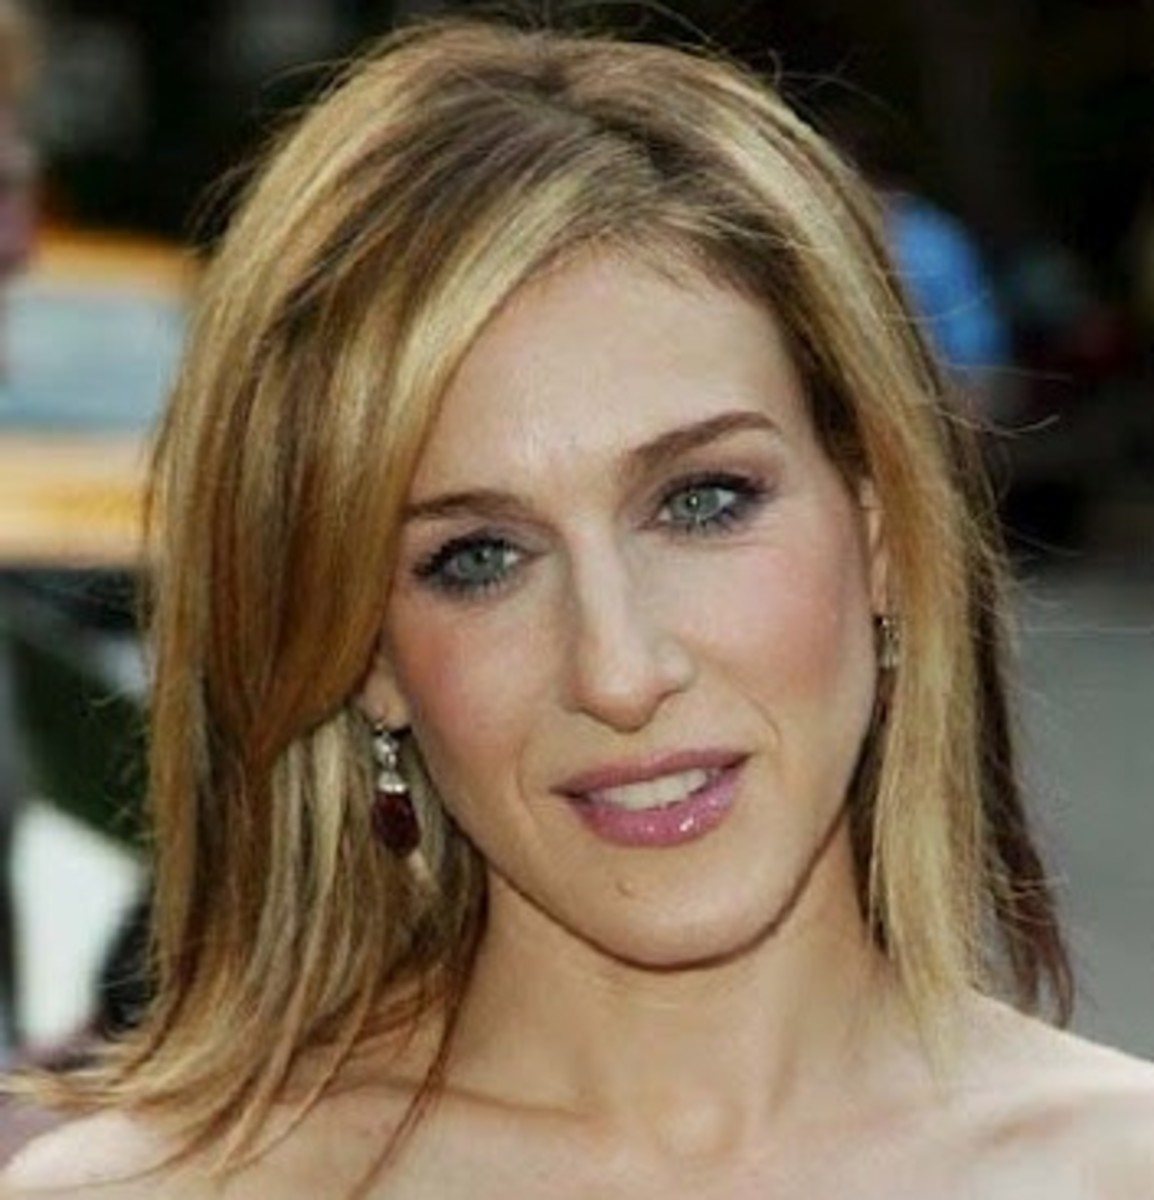 Sarah Jessica Parker with a shoulder-length, conservative, two-tone hairstyle